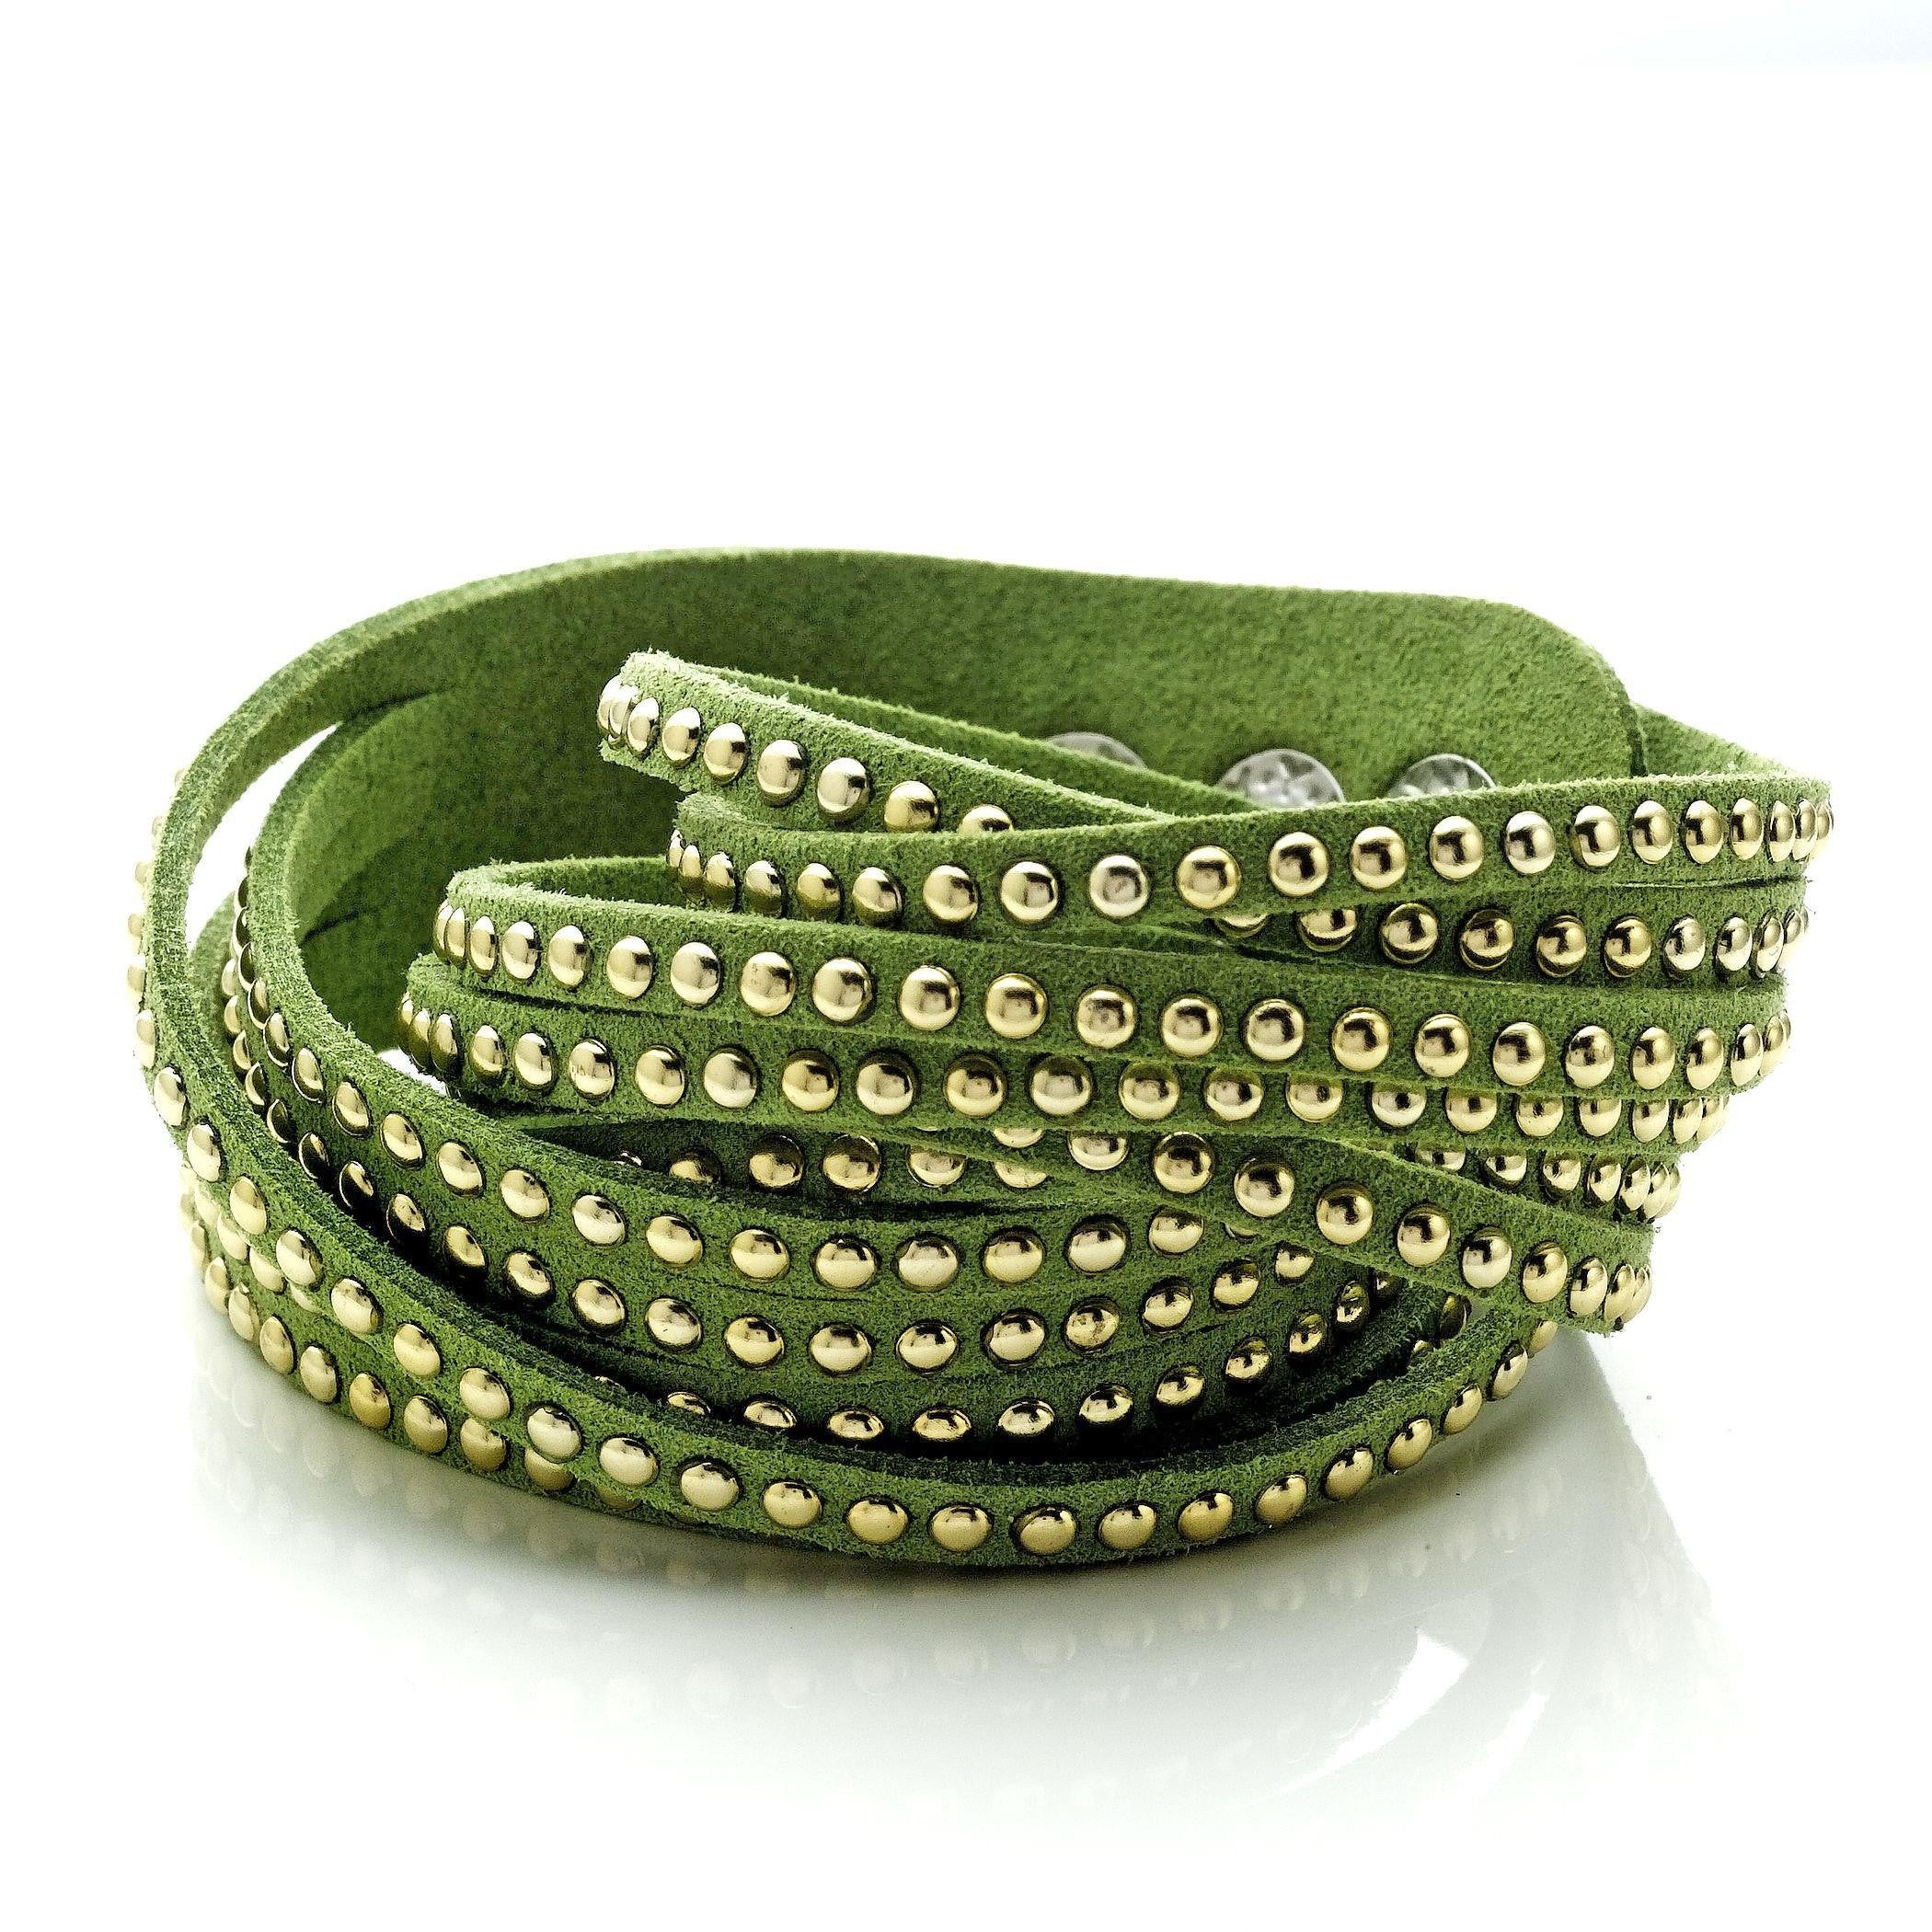 Green Soft Leather Wrap Bracelet with Stainless Steel Beading - 7""